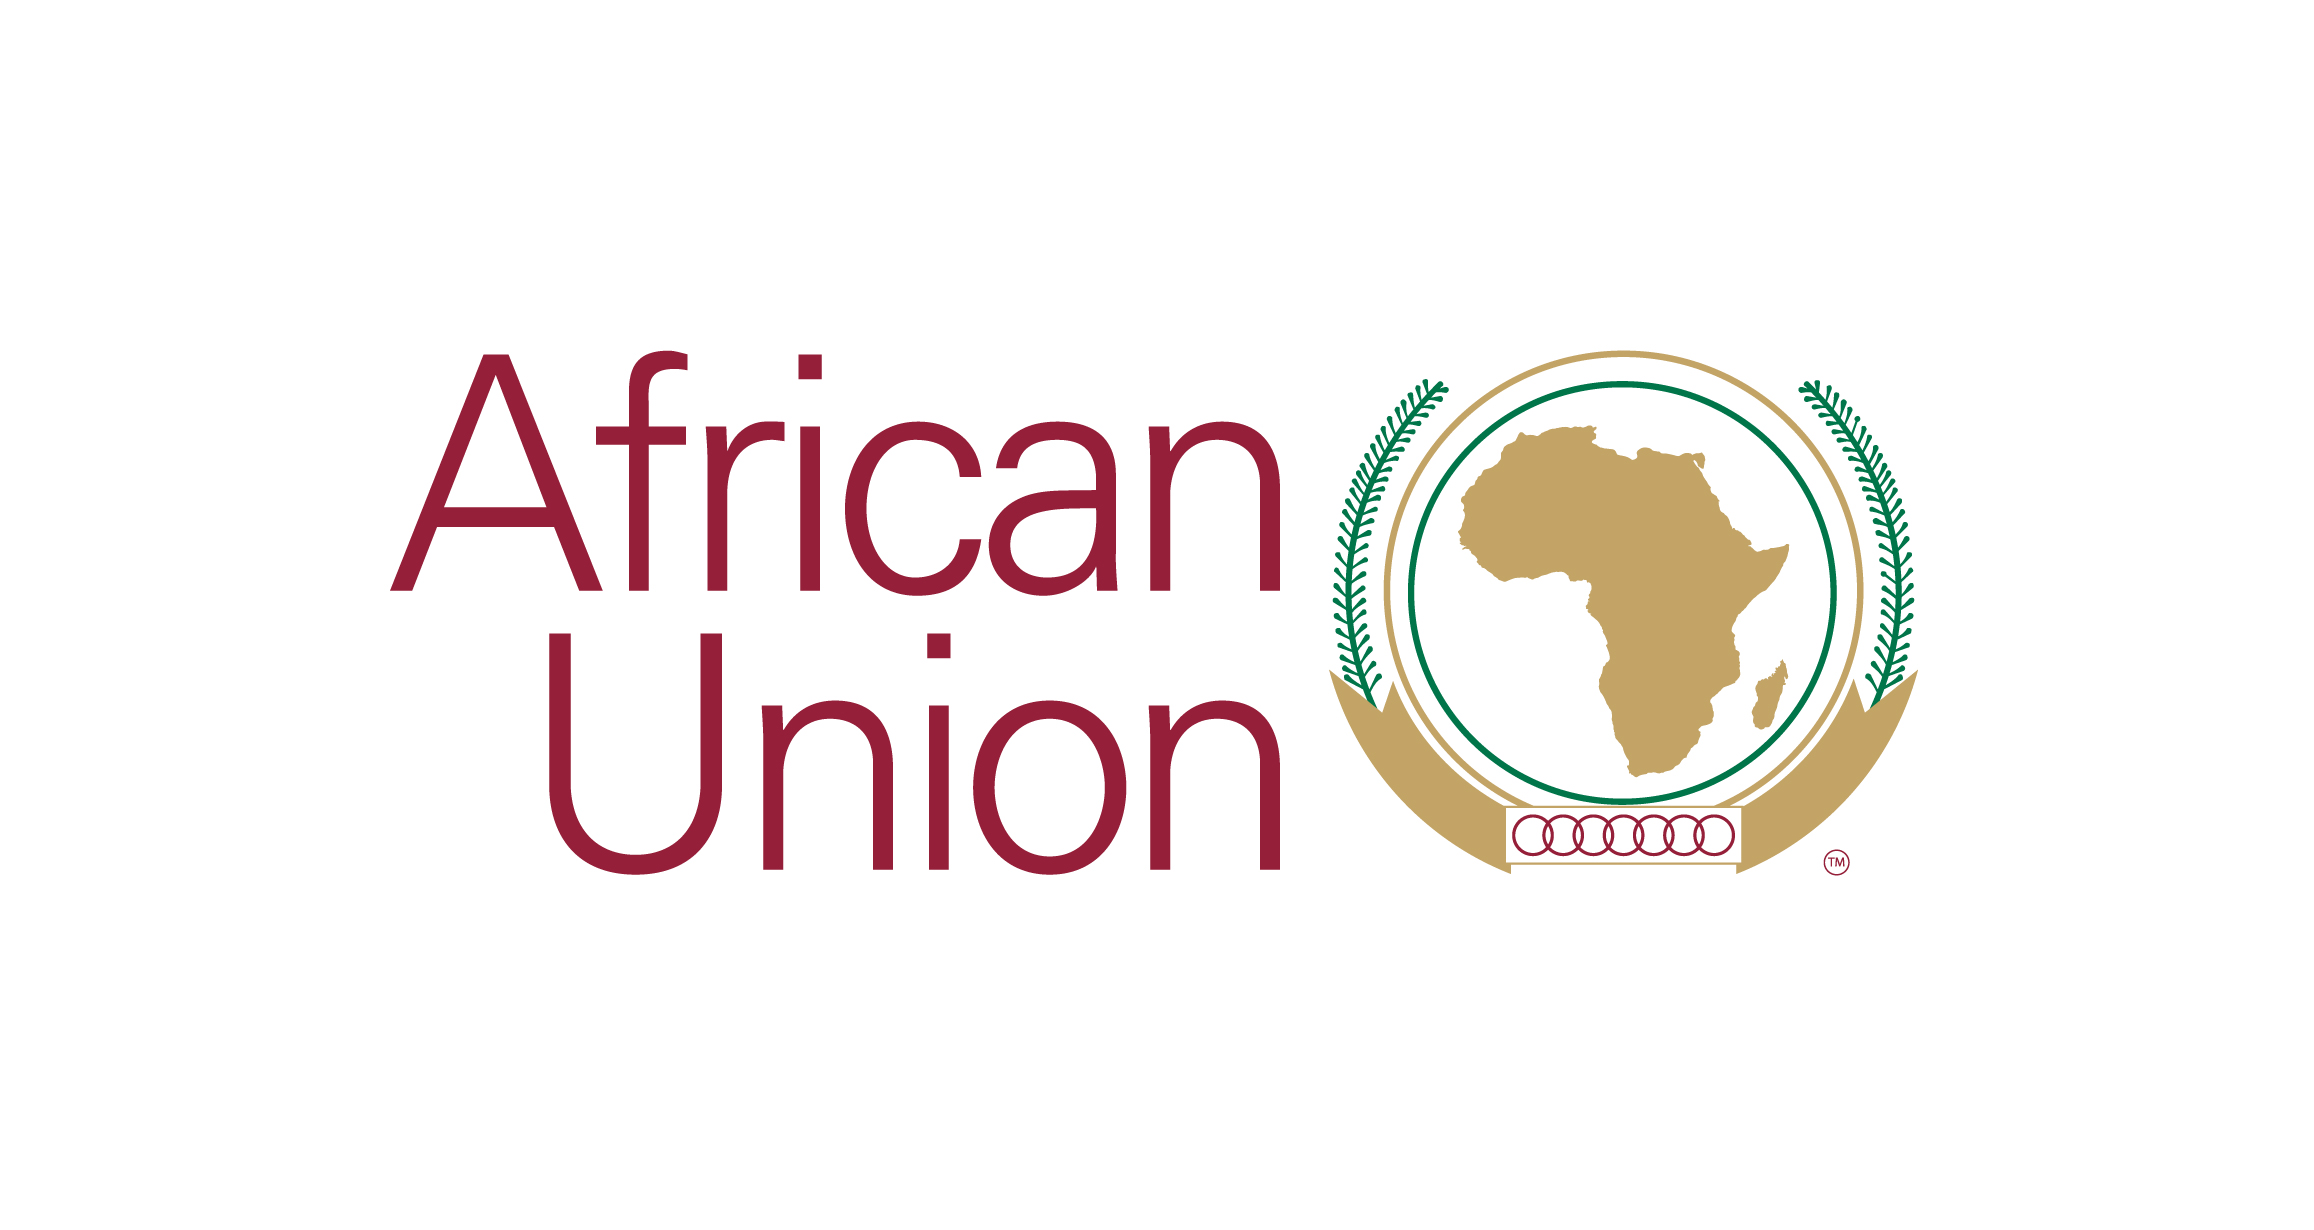 Logo of the African union